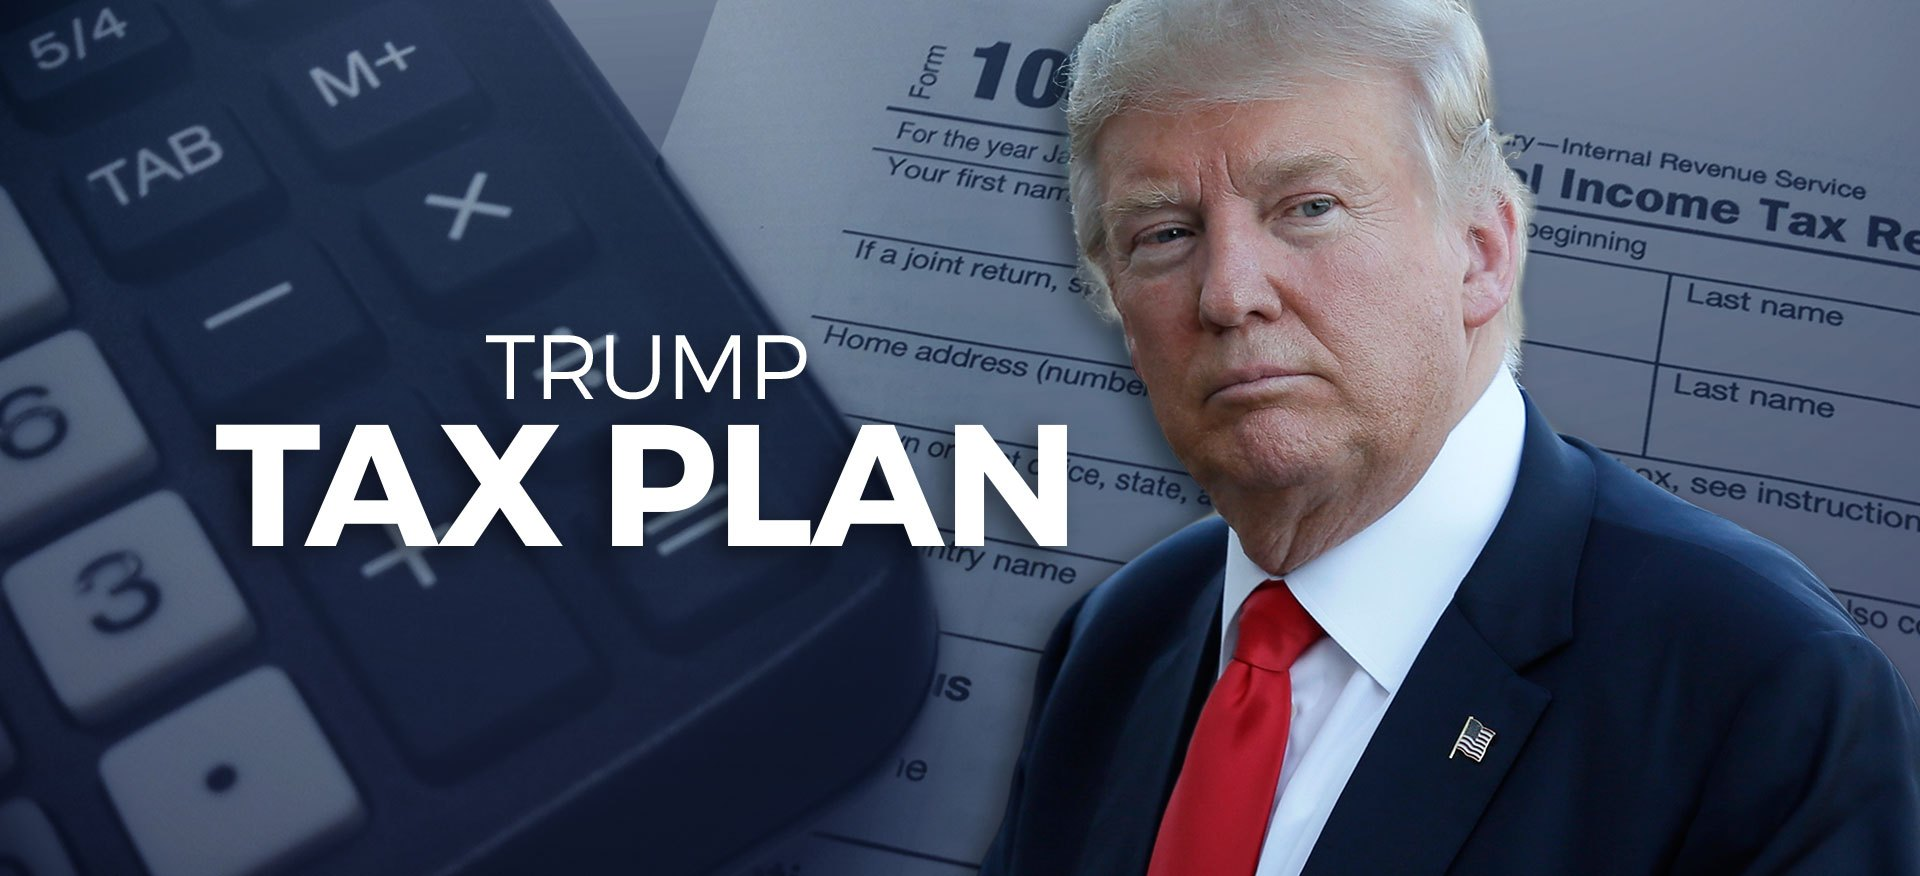 Trump Tax Plan Accounting Firm